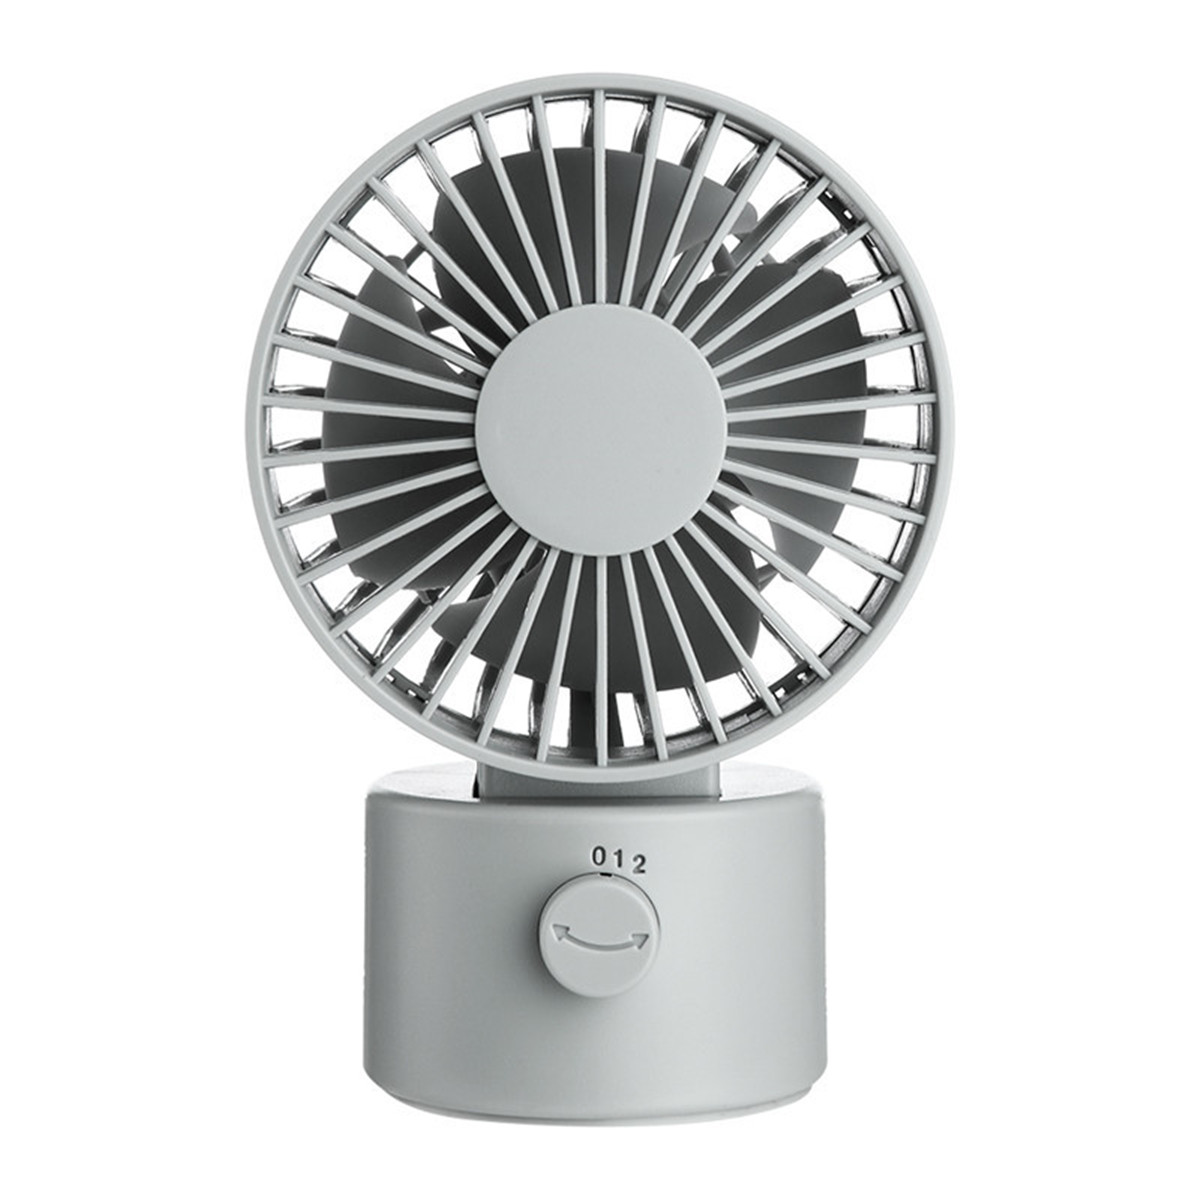 1.2W Mini USB Rechargeable Desktop Silent Fan 2 Modes Wind Speed